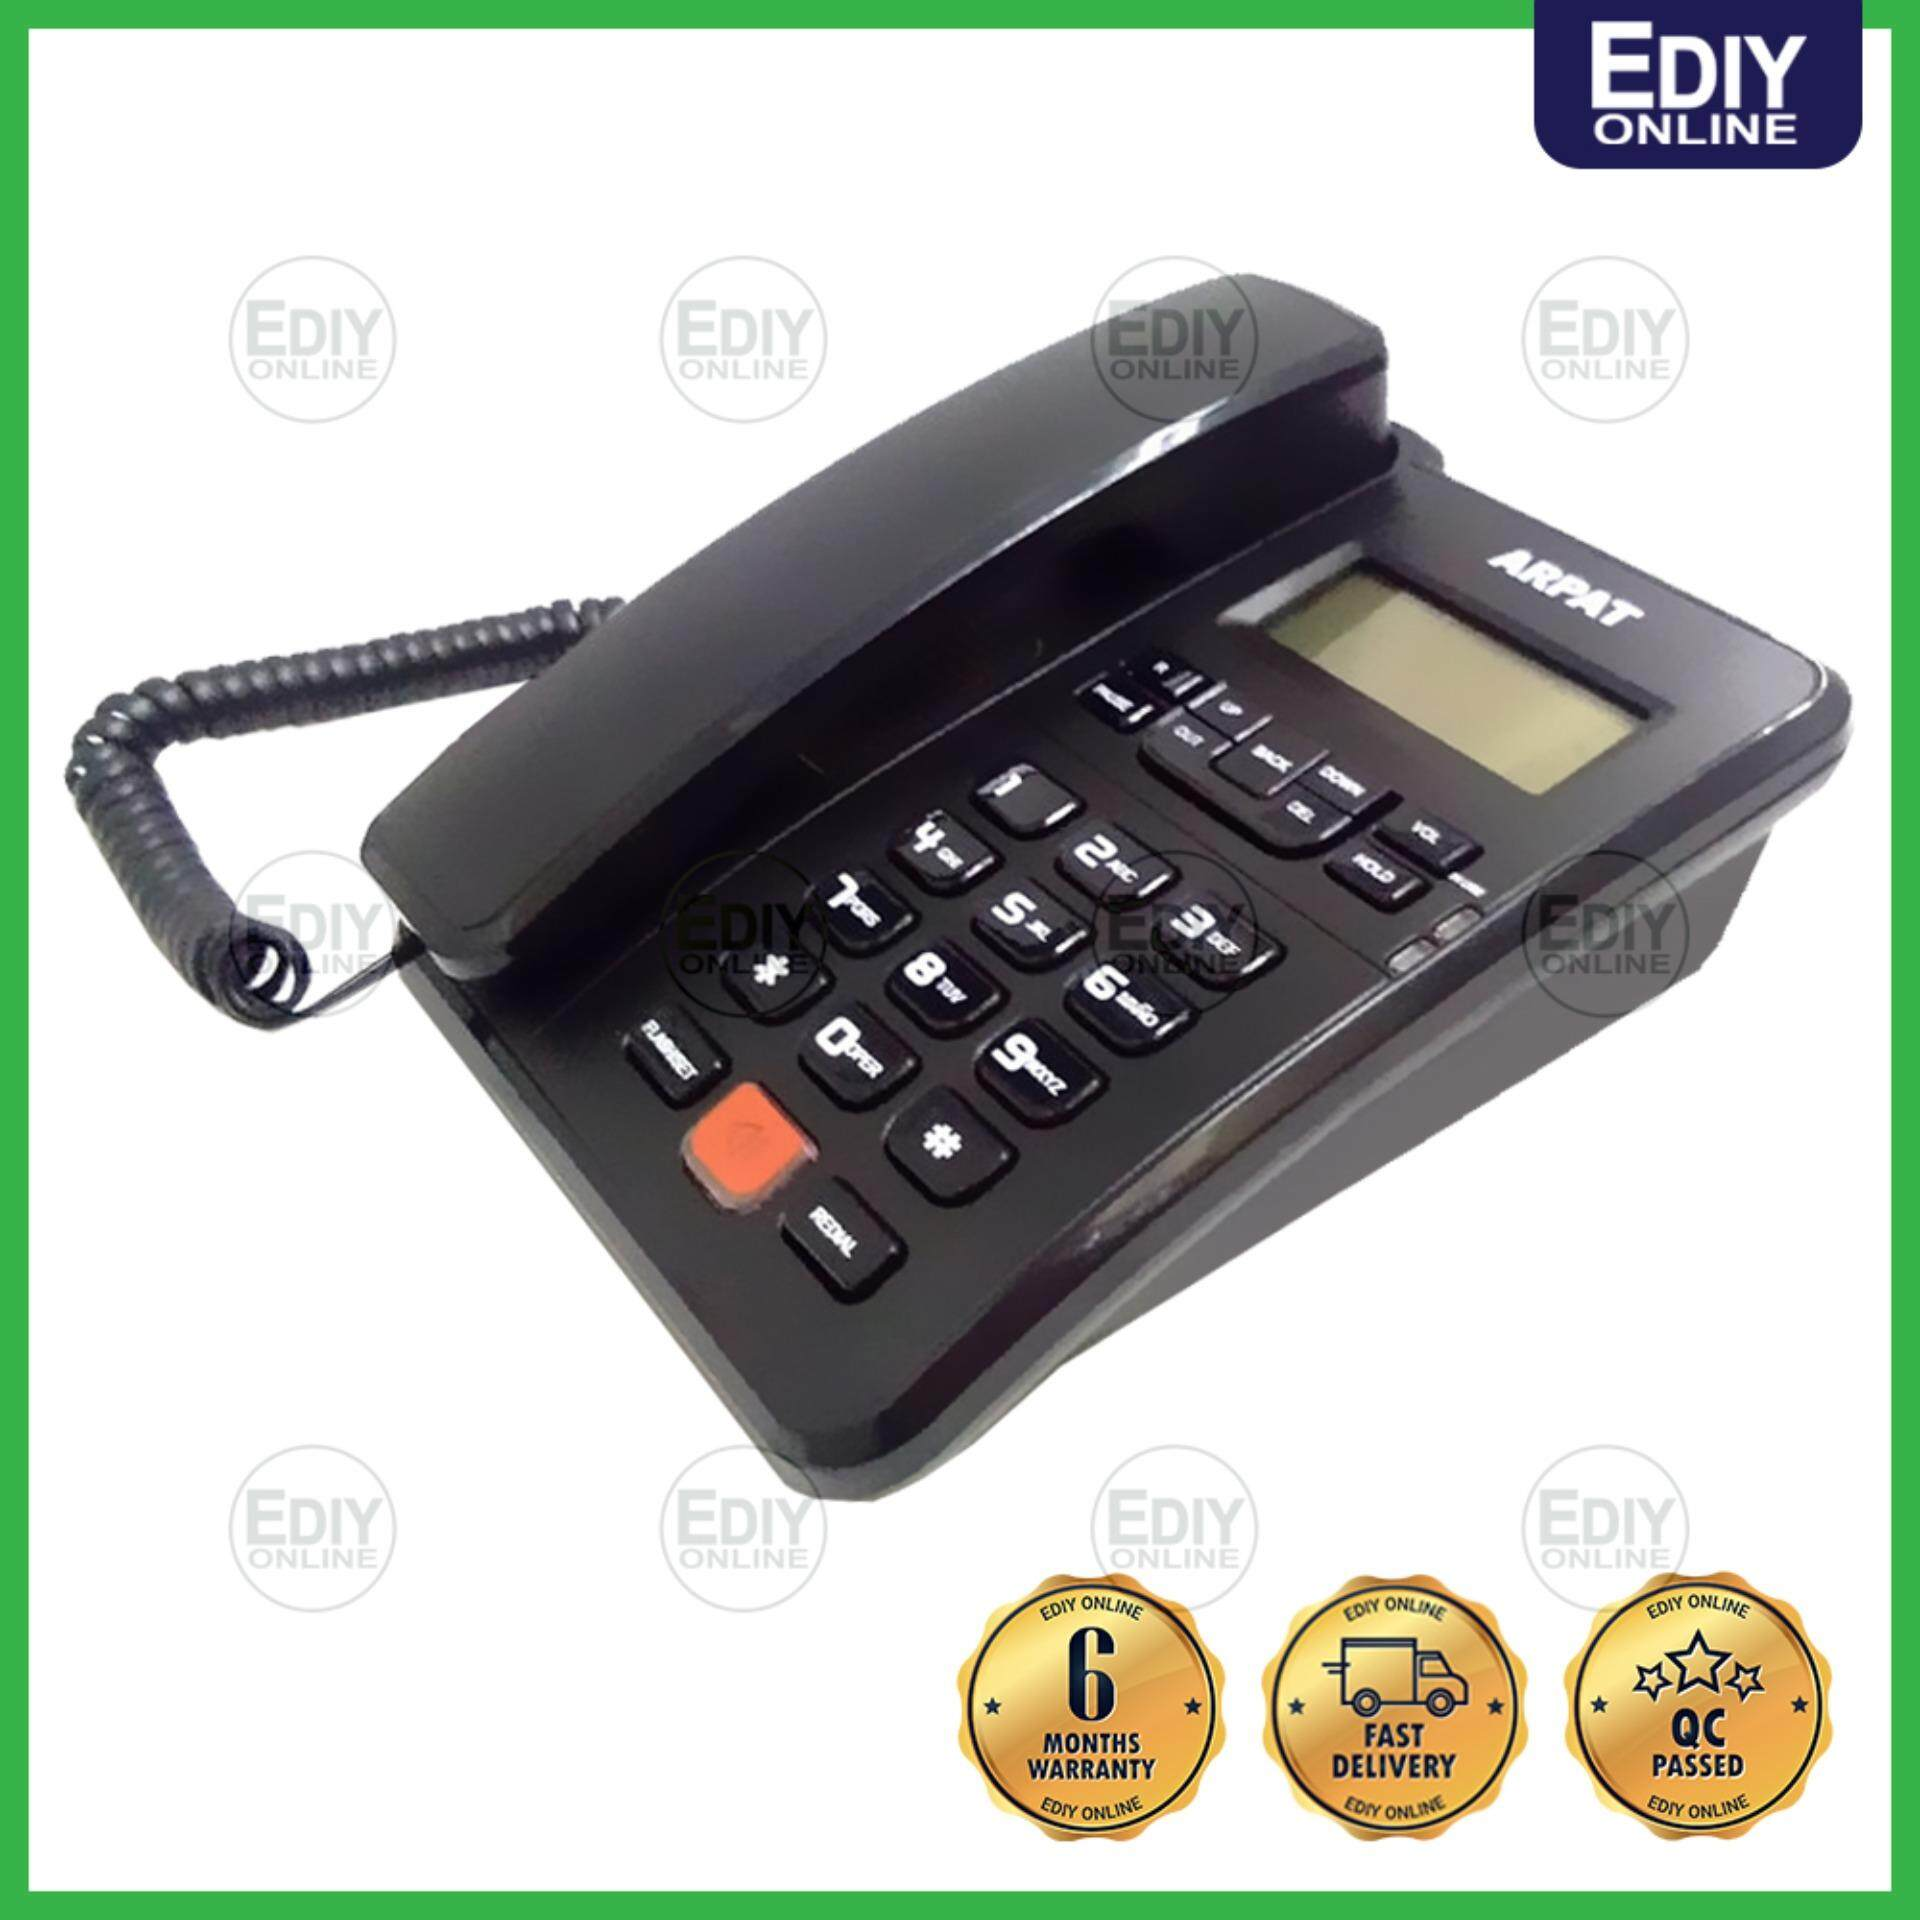 ARPAT CALLER ID PHONE TELEPHONE 8810 7710 PROFESSIONAL (RANDOM COLOR) _3601015 [EXTRA BOX PACKING]